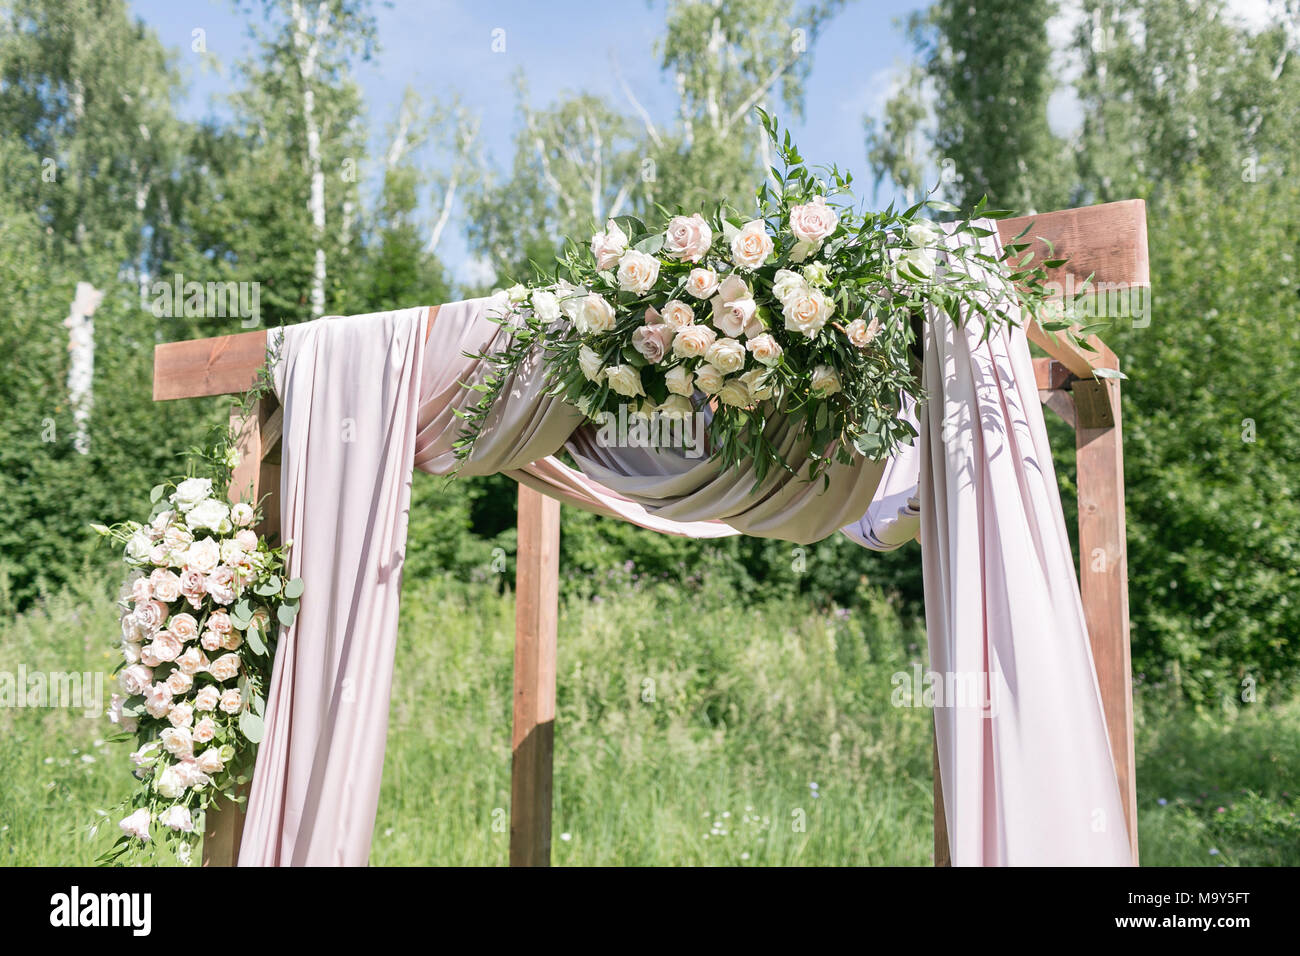 Wooden arch decorated with flowers, are in the zone of the wedding ...